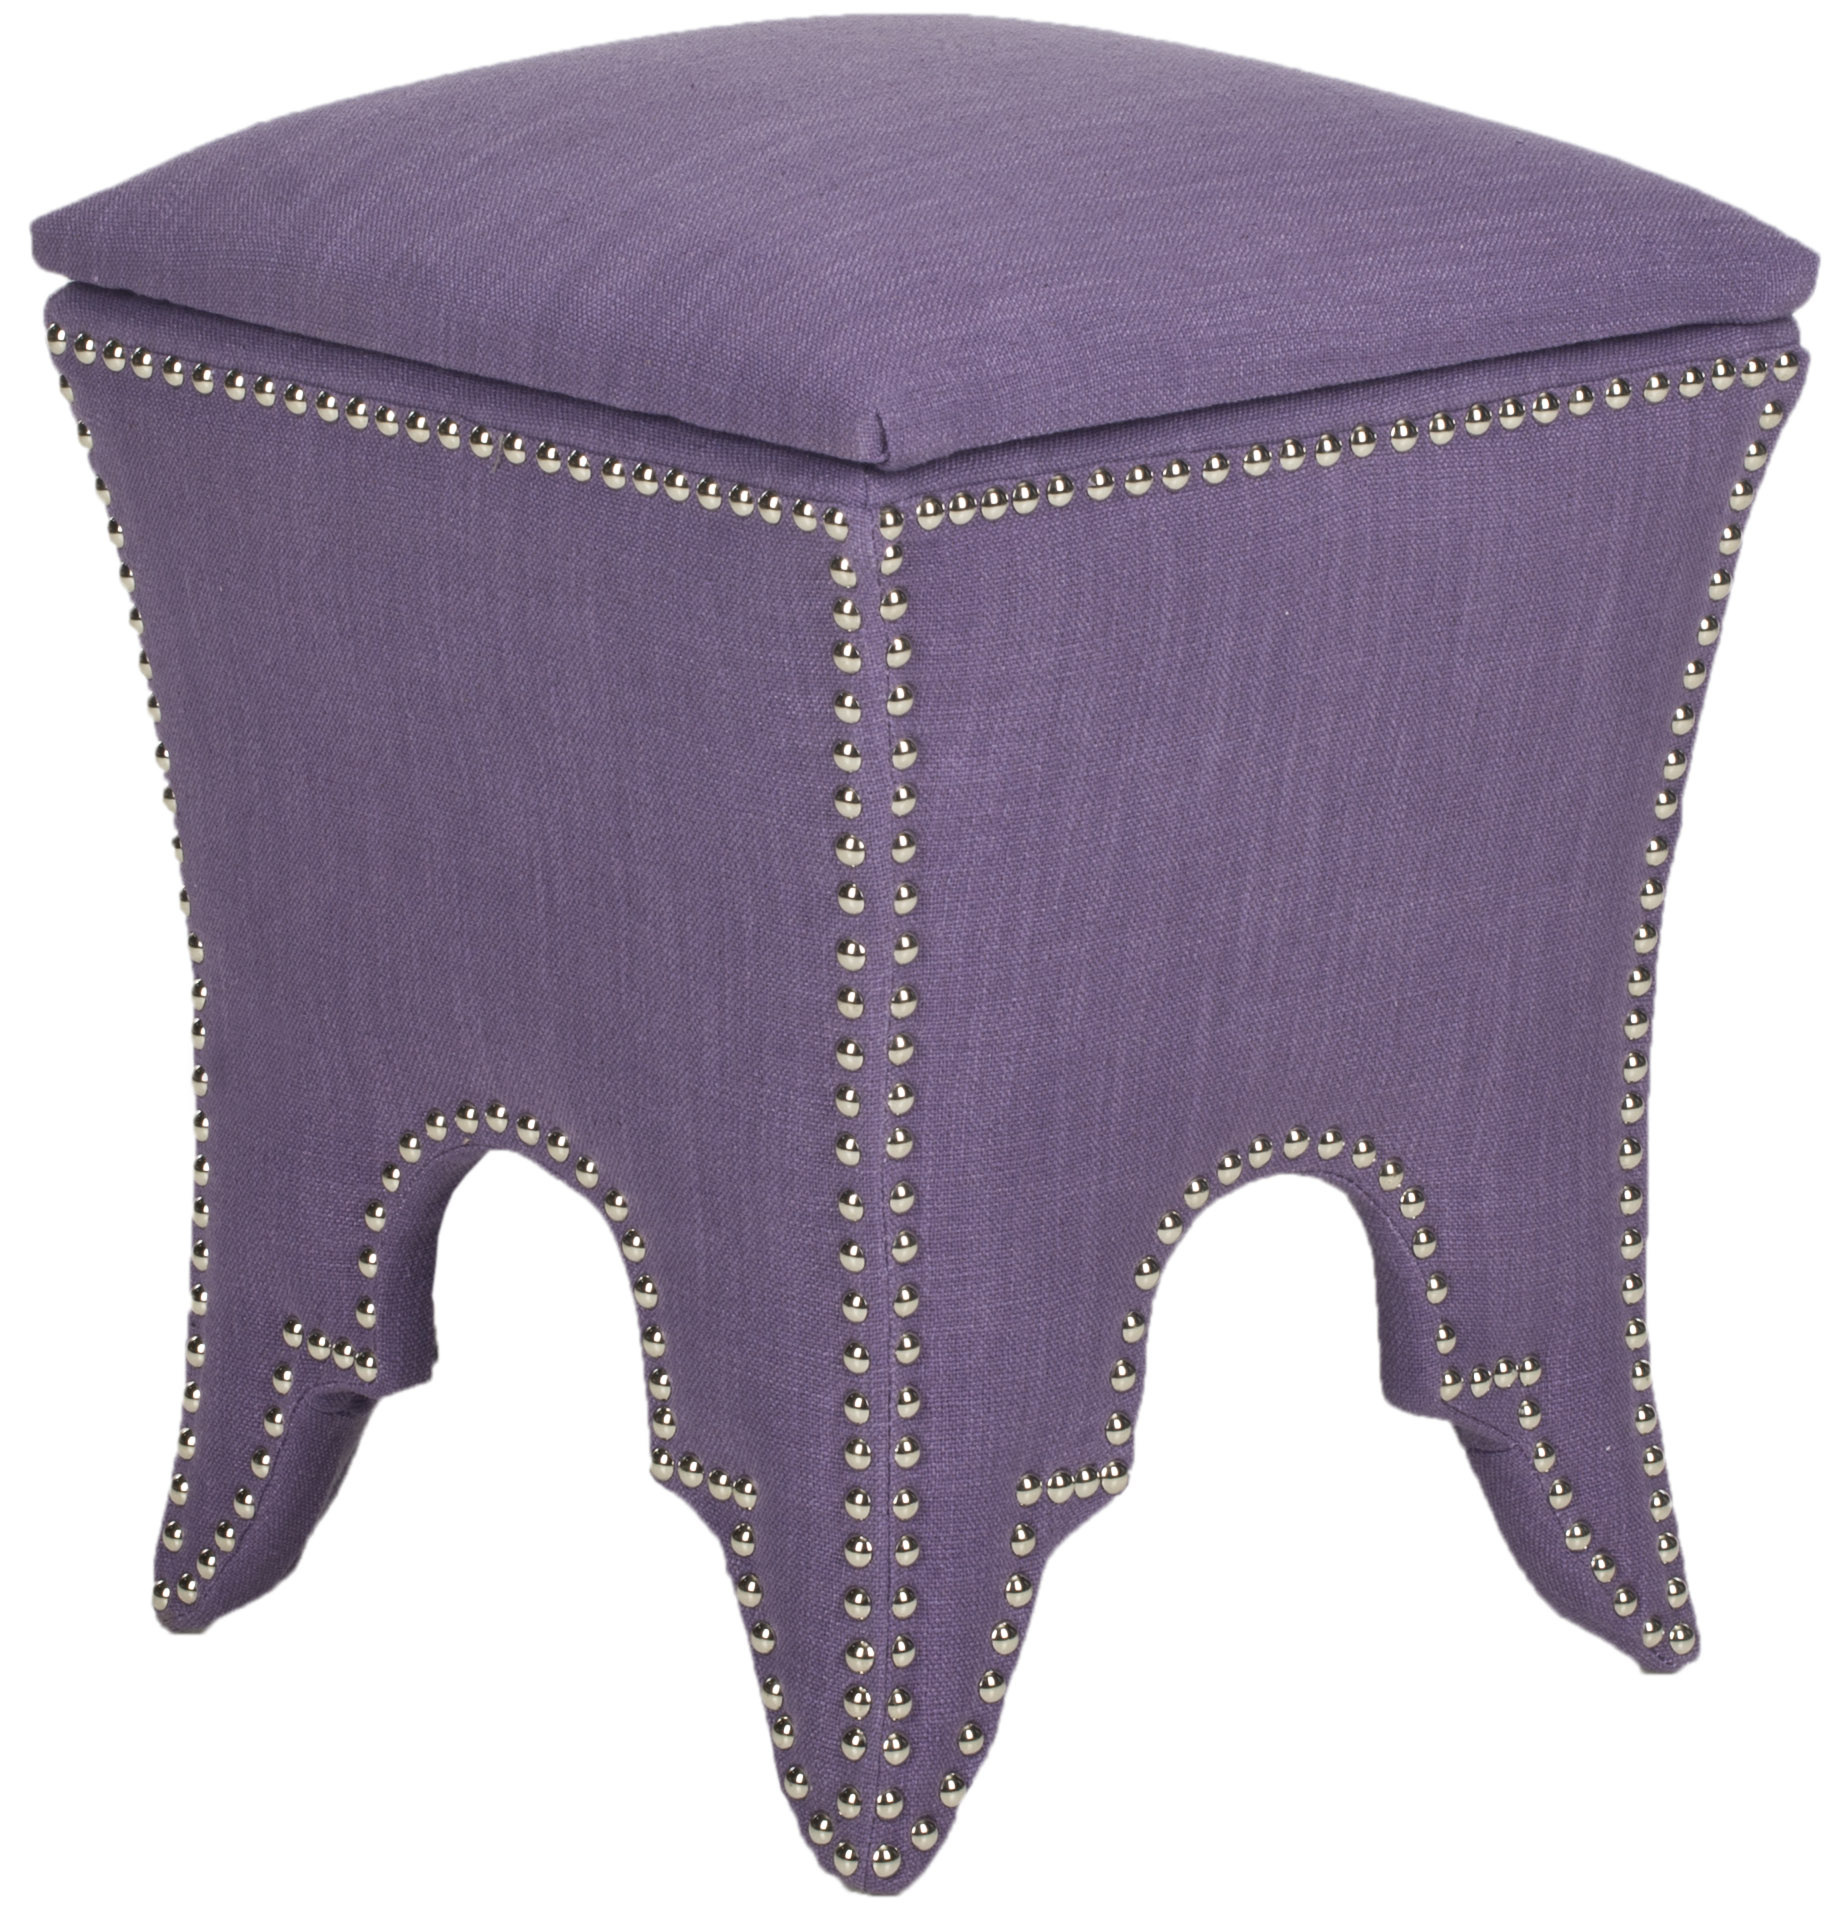 Deidra ottoman in lavender with arched sides from Safavieh